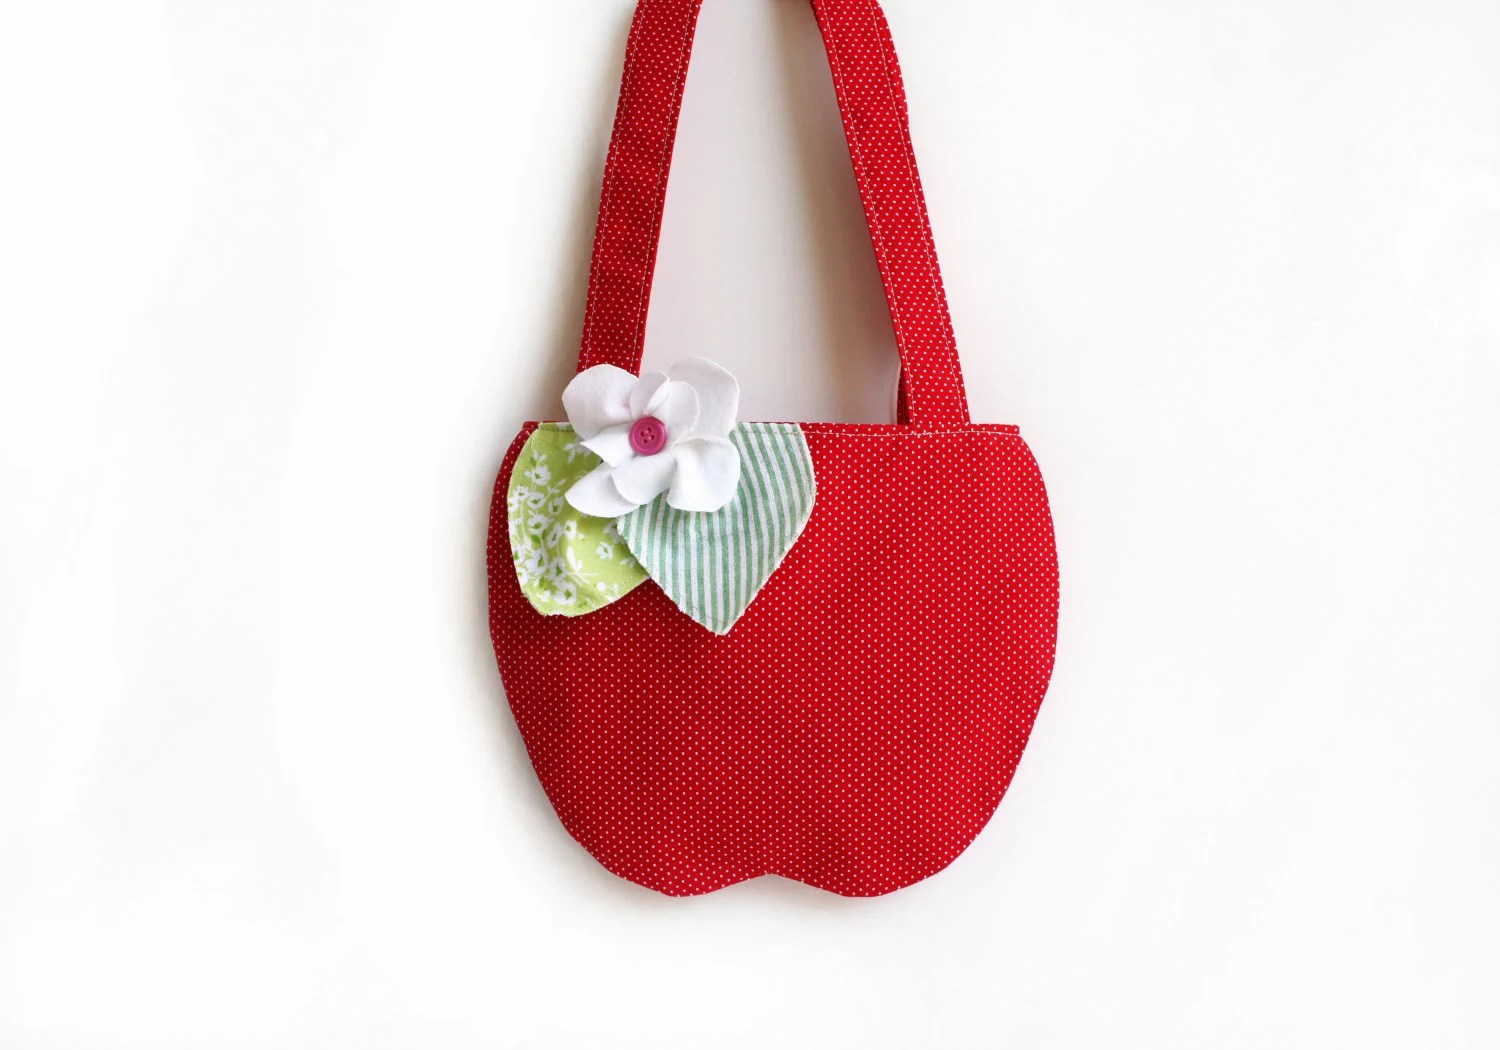 Girl's Red Apple Purse, Children's Accessories,  Apple, Tote Bag, Kids, Polk Dots, Girl's Purse - AppleWhite